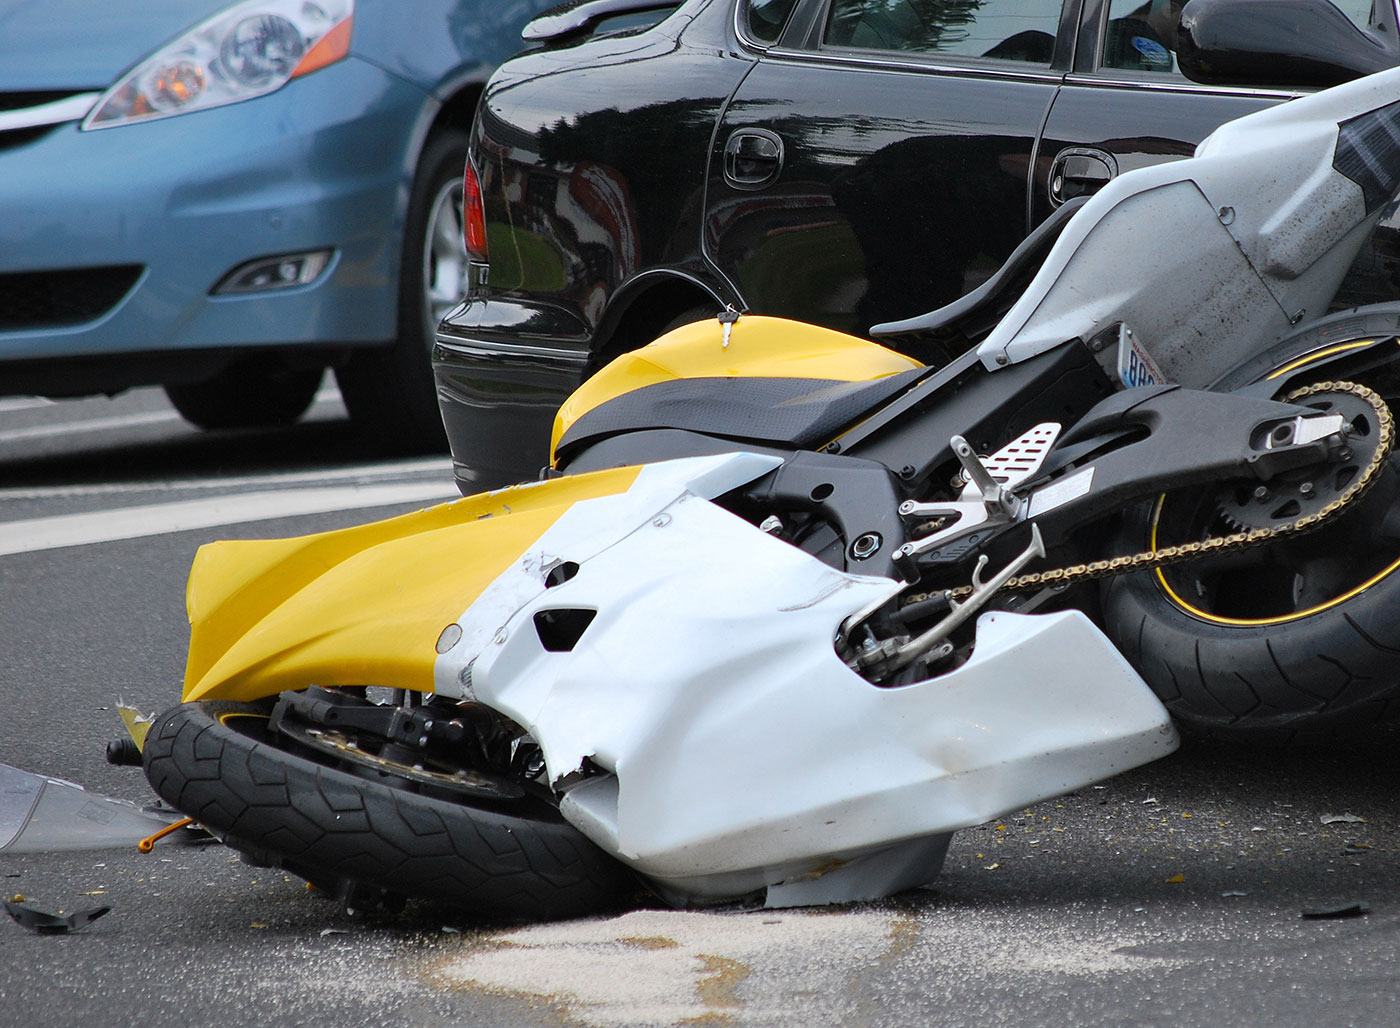 The scene of an accident involving a motorcycle, being investigated by motorcycle accident attorneys in Peoria IL